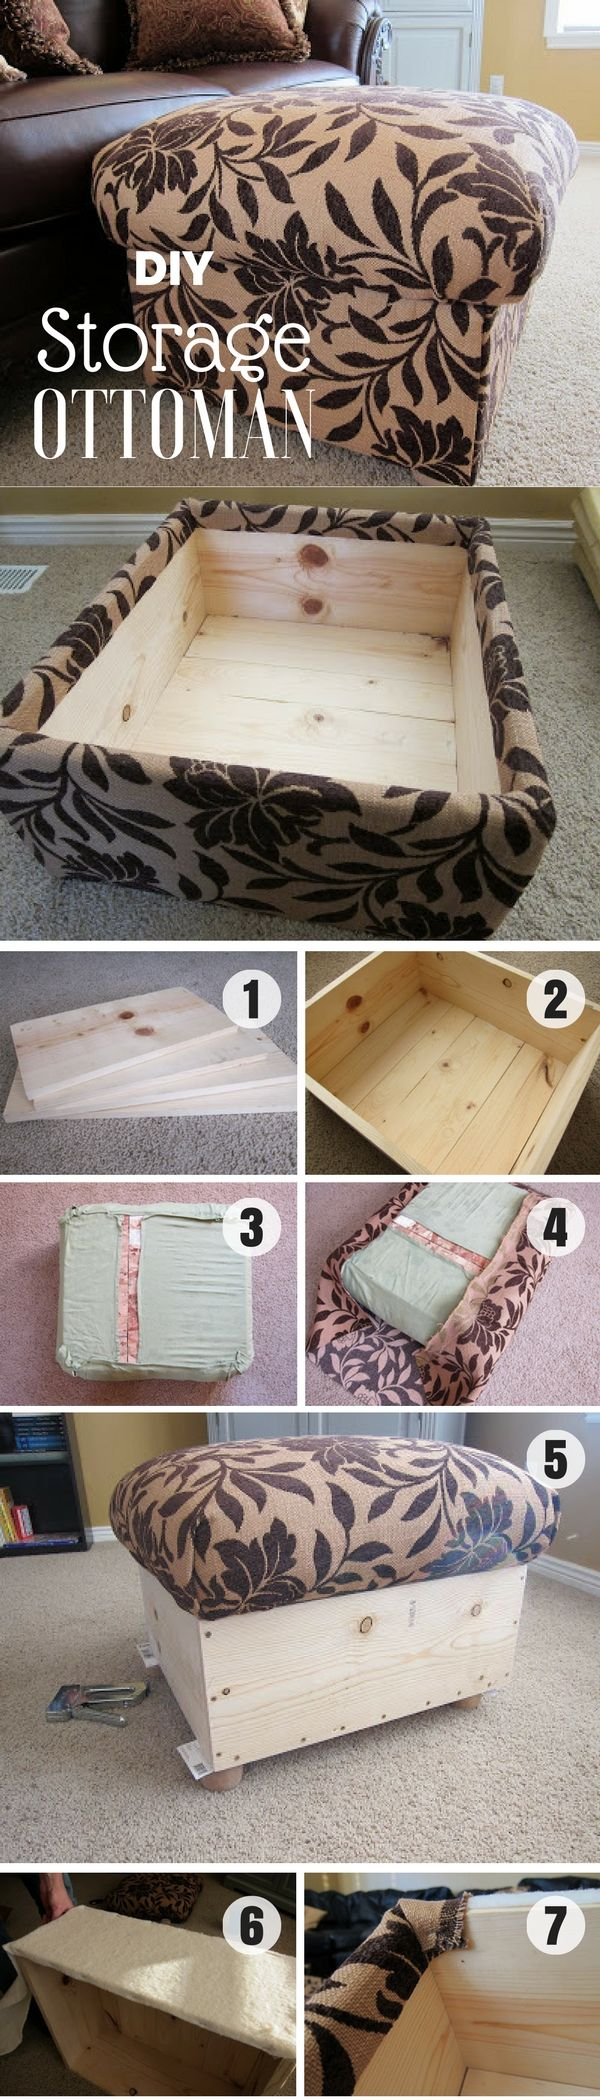 Make your own DIY storage ottoman from scratch @istandarddesign